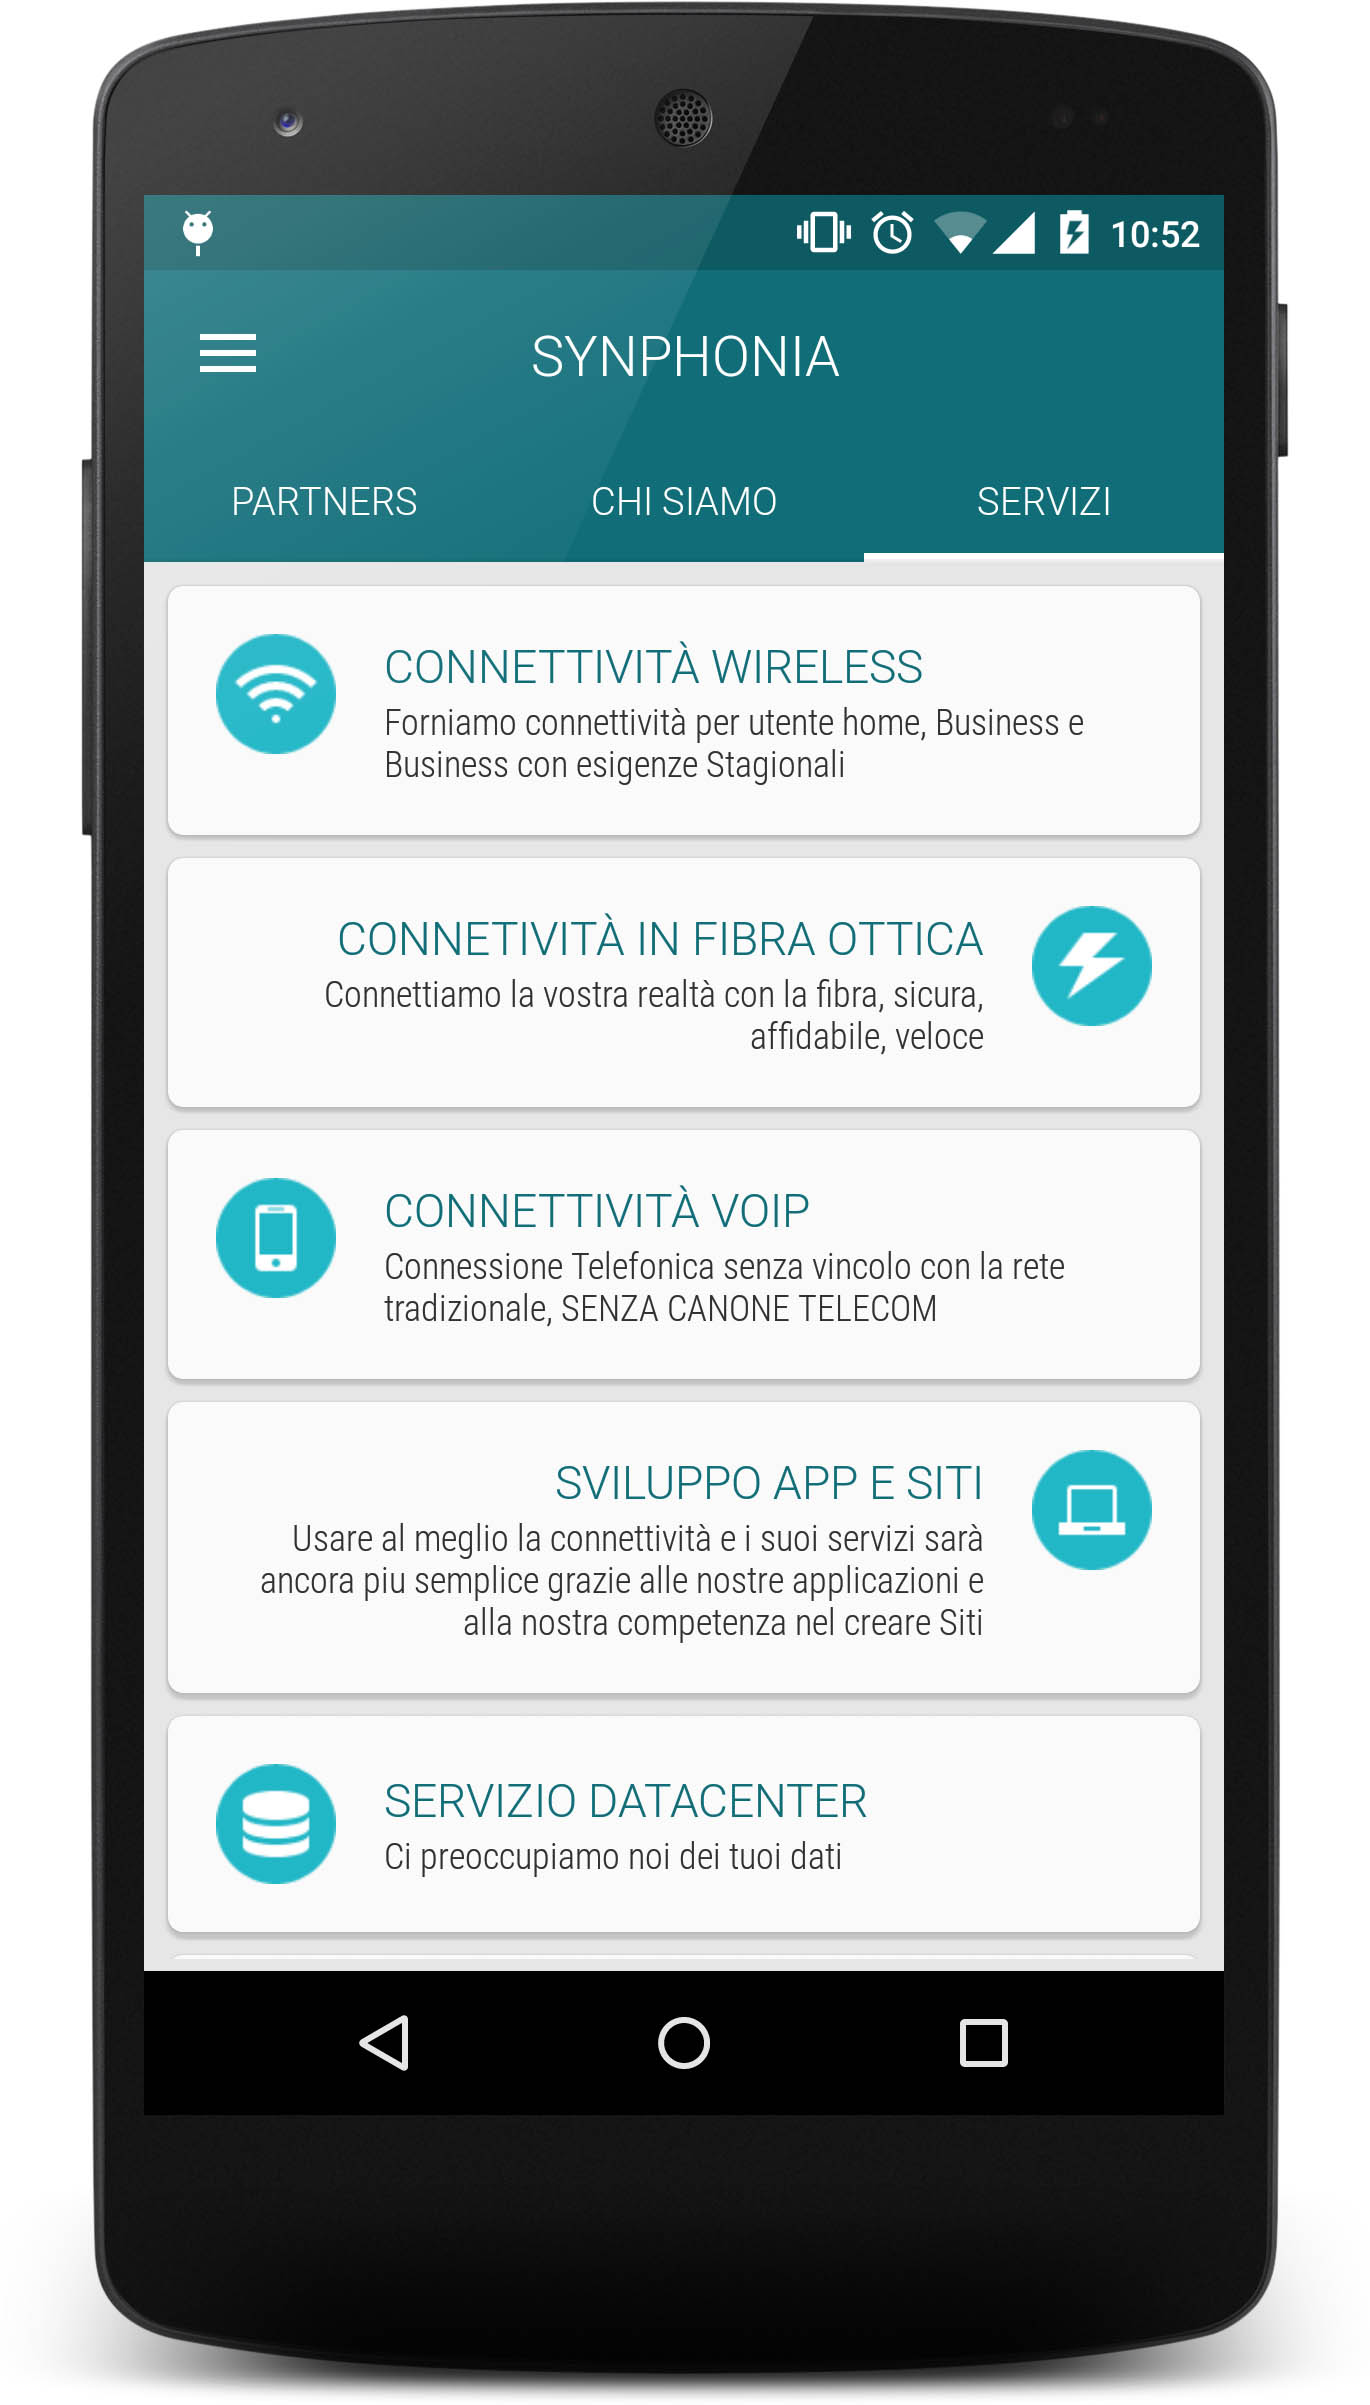 Synphonia App